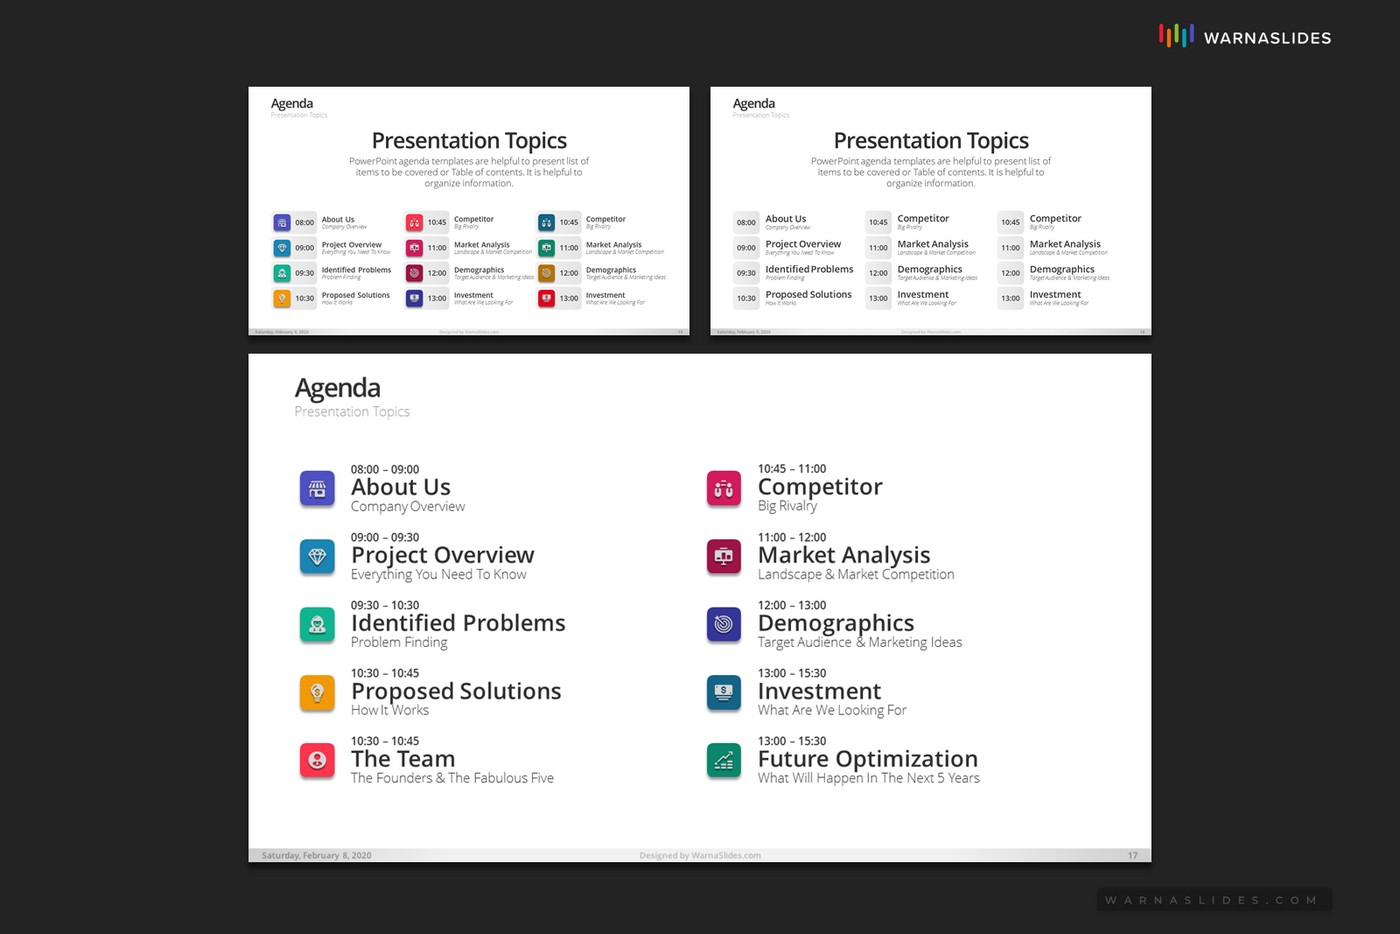 Agenda-Meeting-PowerPoint-Template-2020-for-Business-Pitch-Deck-Professional-Creative-Presentation-by-Warna-Slides-008